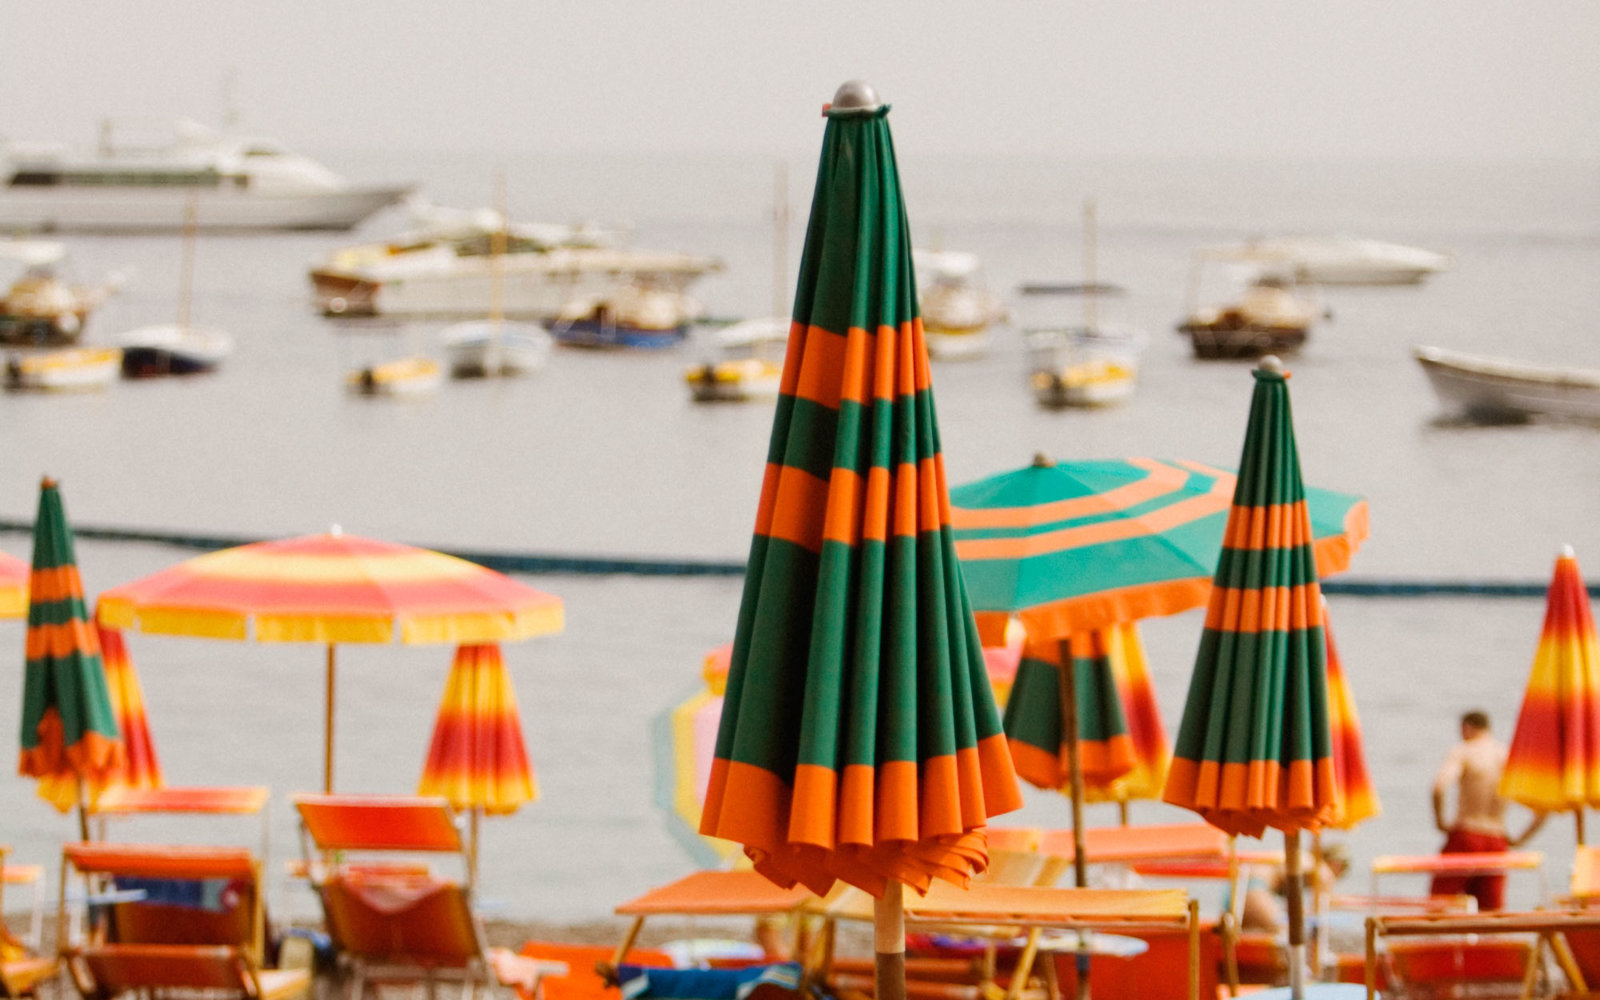 A Few of the Many Umbrellas Dotting Italy's Beaches